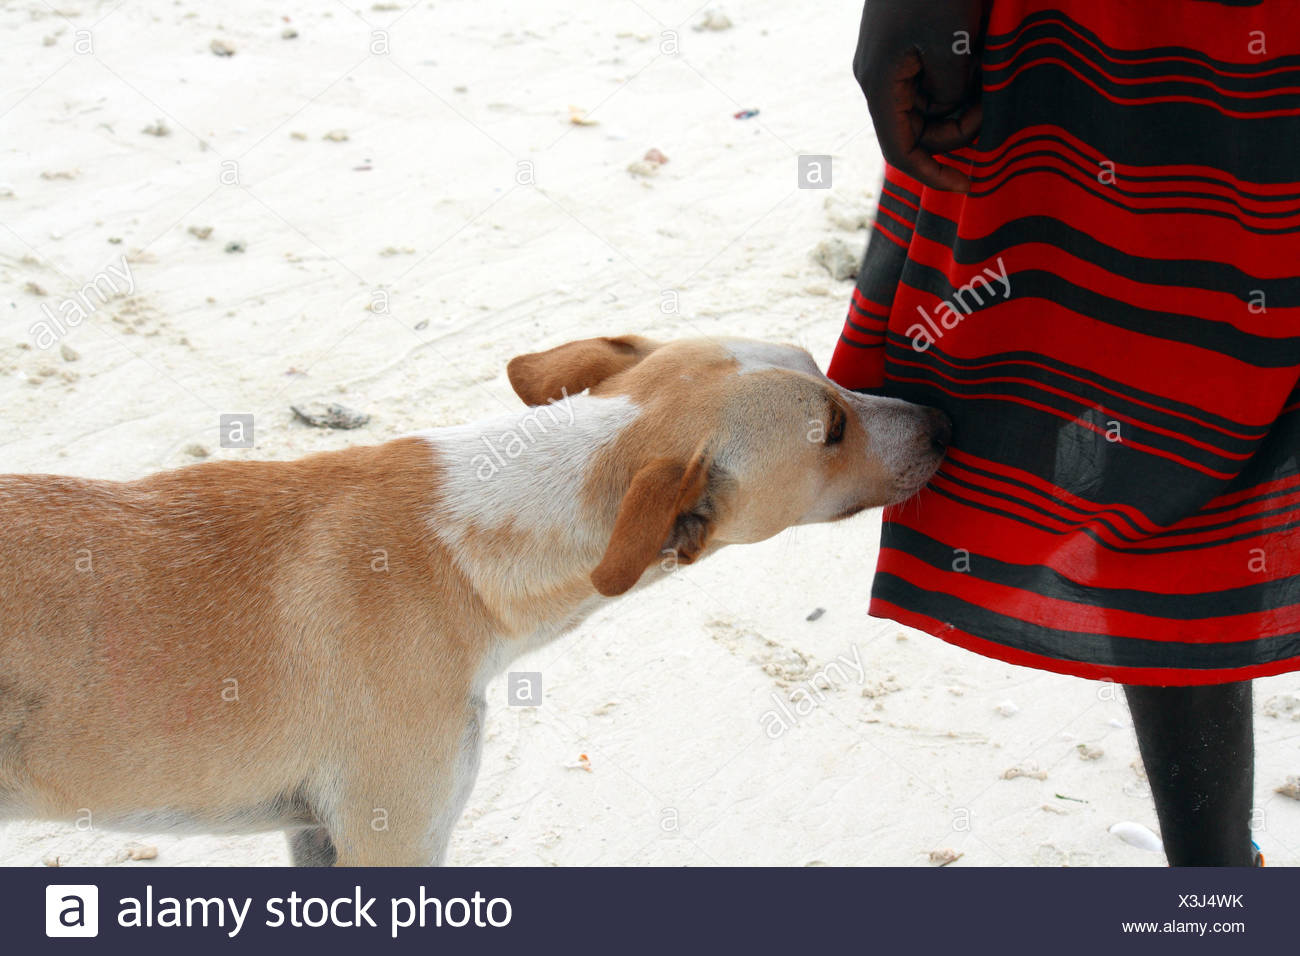 africa, dog, leg, tunic, boy, lad, male youngster, friend, man, profile, hand, - Stock Image